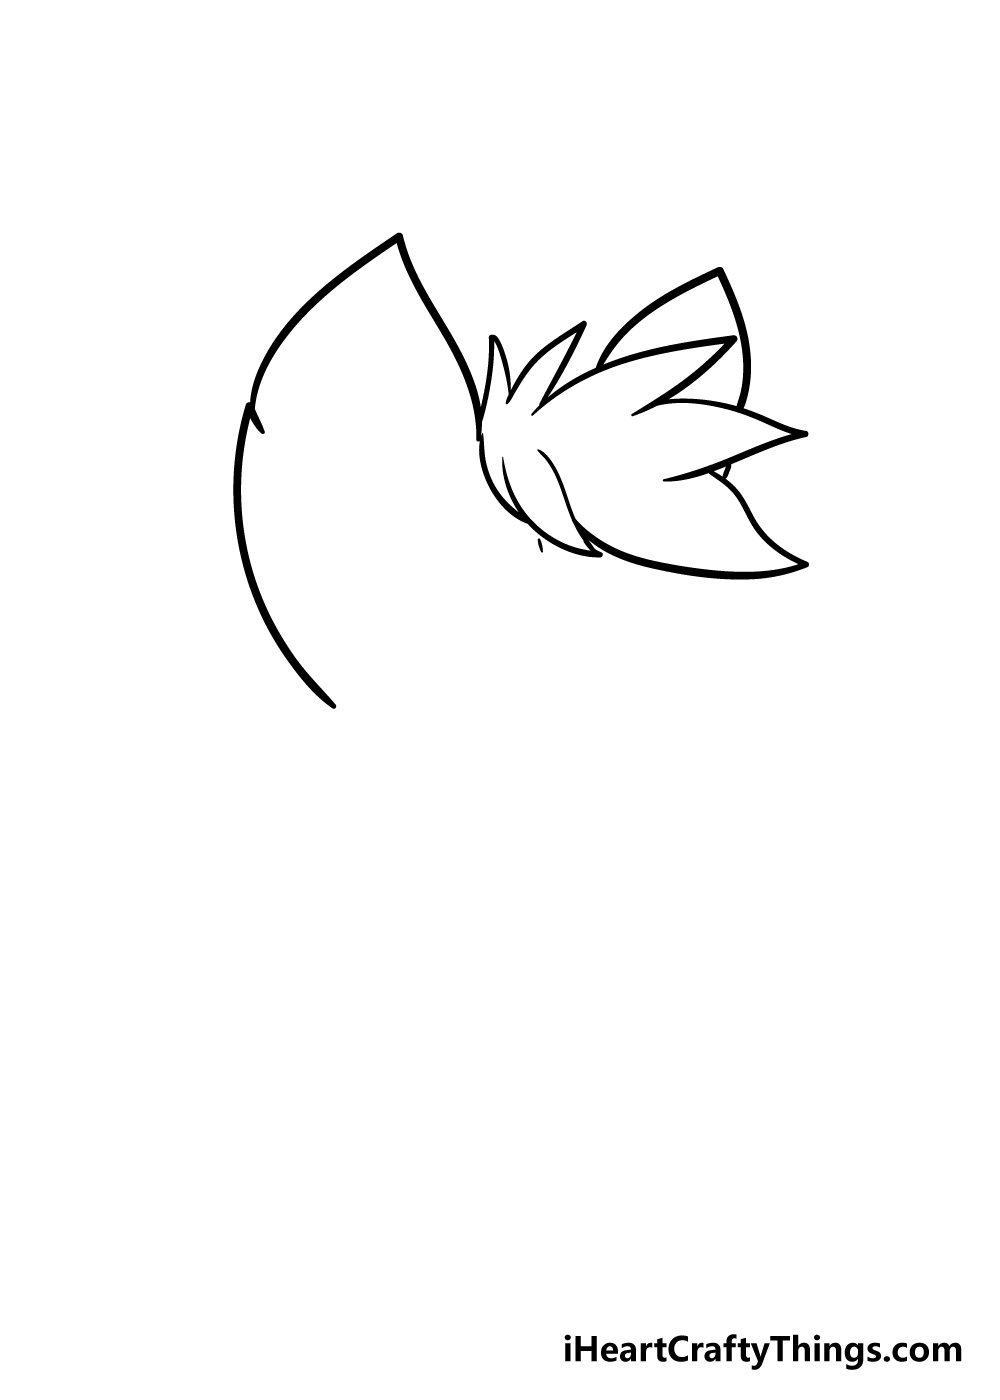 furry drawing step 2